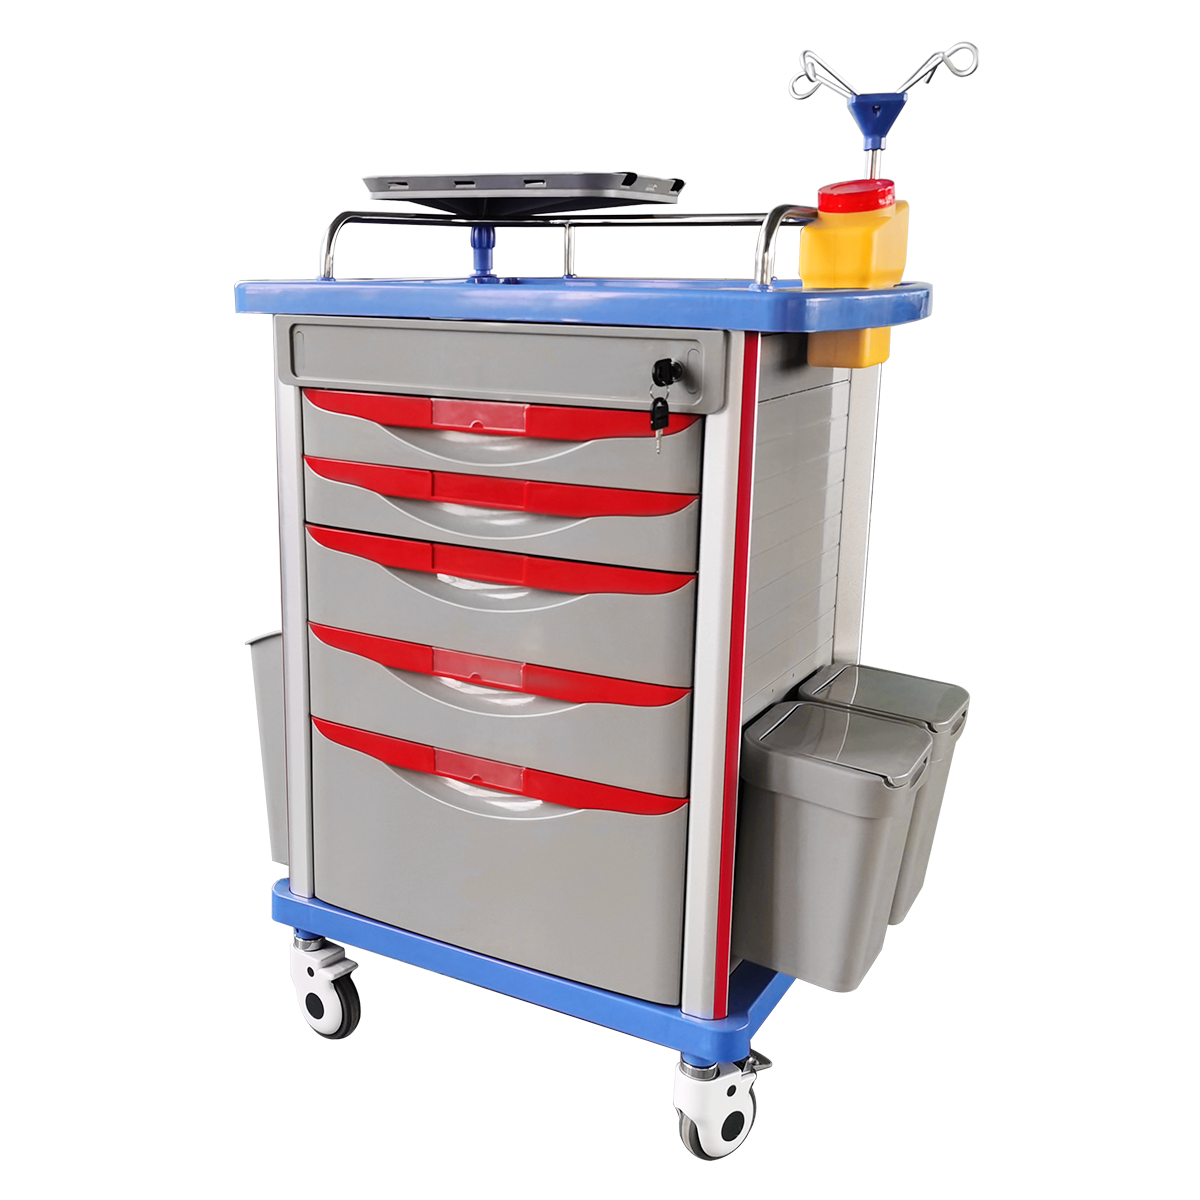 Hospital trolley ABS medicine anesthesia emergency trolley with 5 drawers